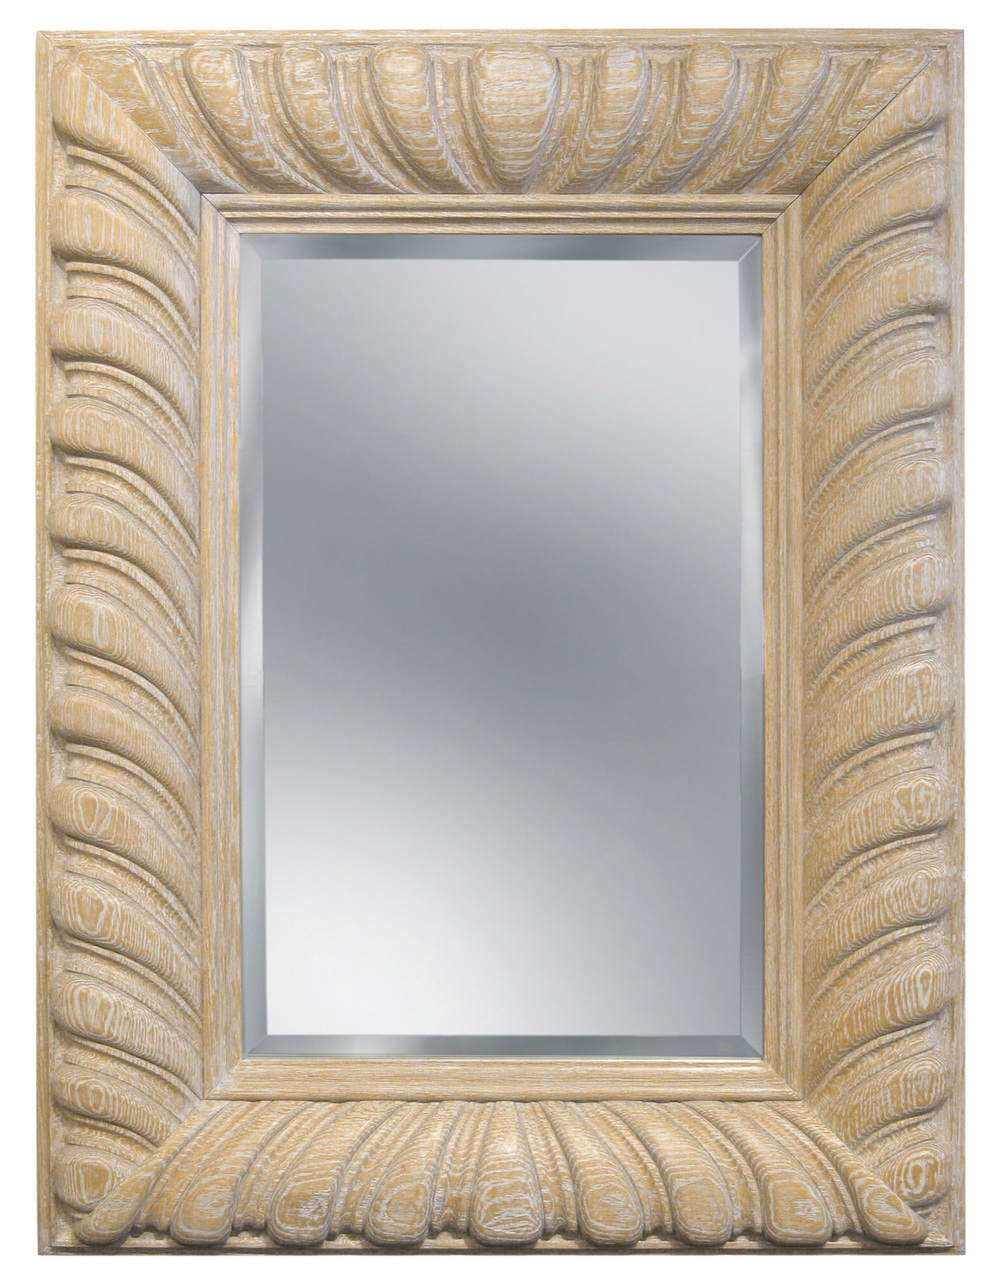 LCS 60 carved oak mirror113 hiresa.jpg